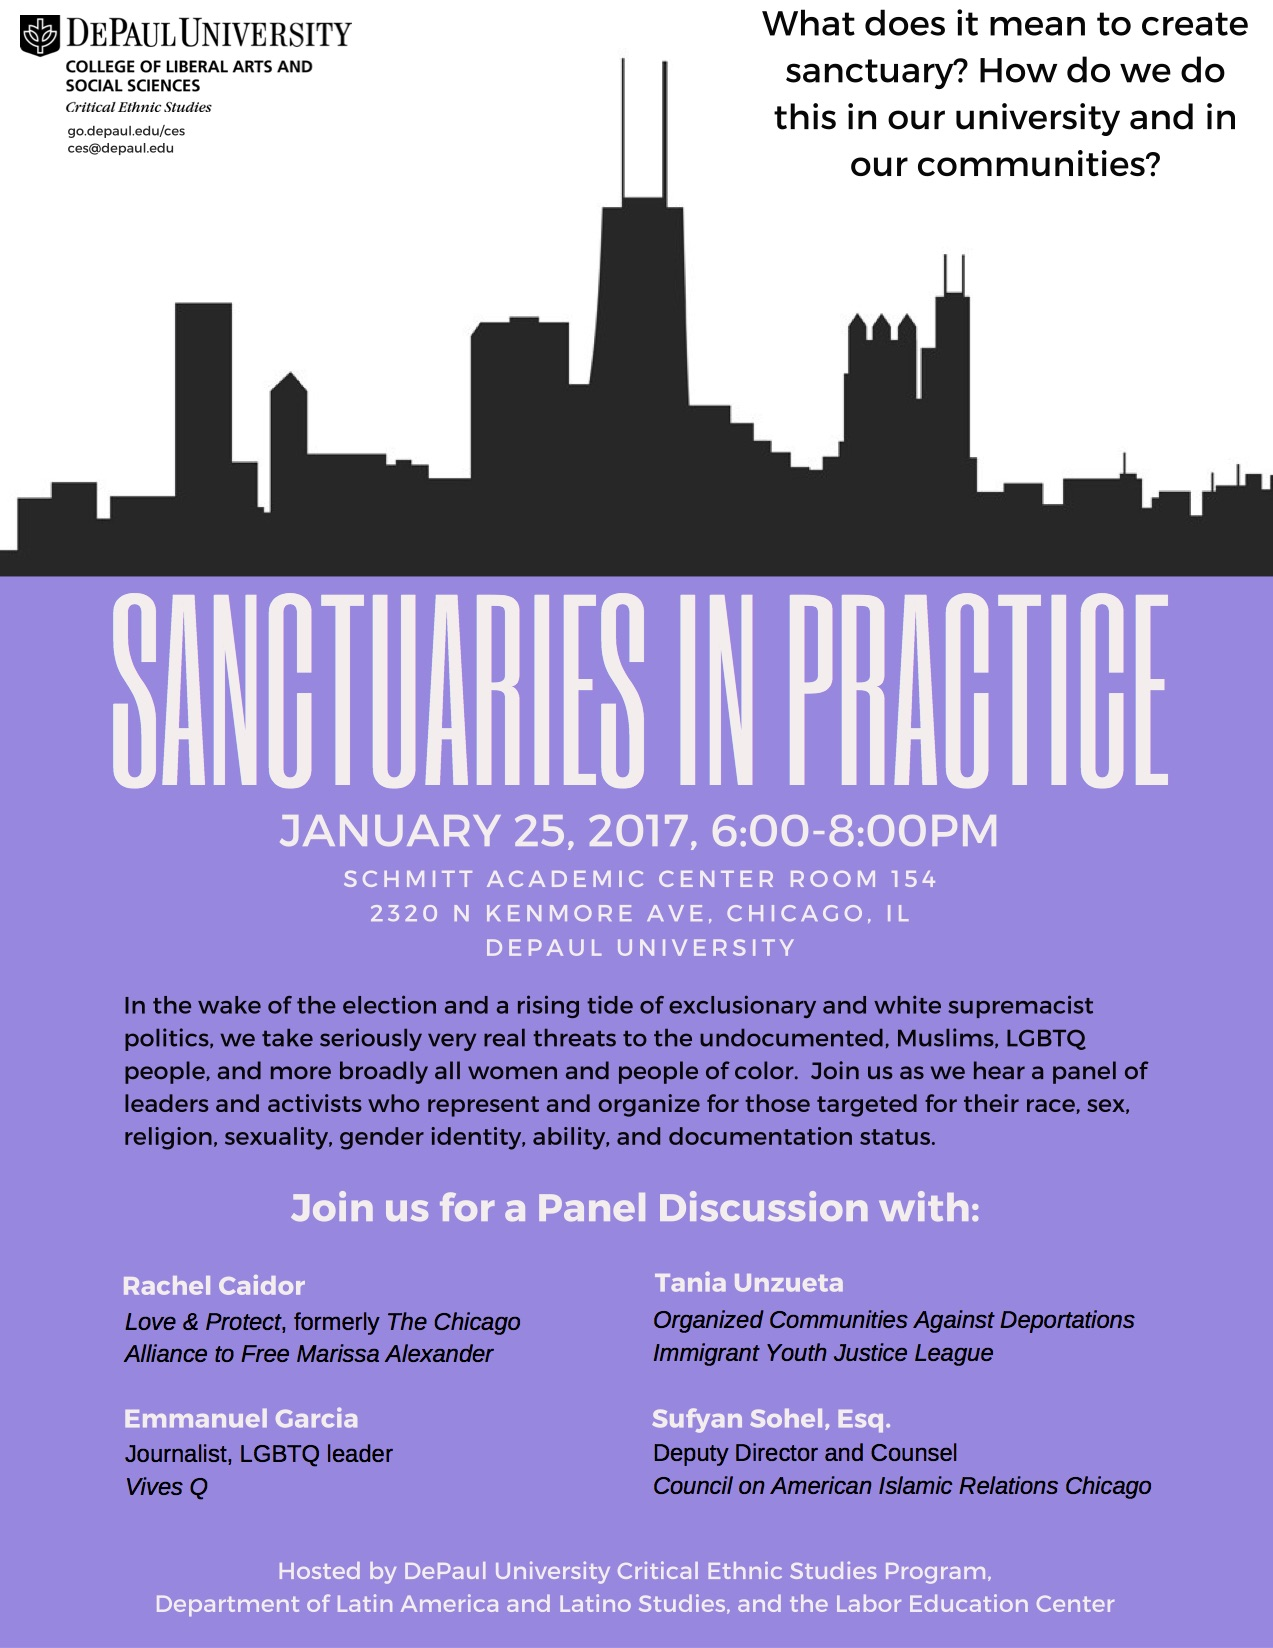 Sanctuaries in Practice Event Flyer